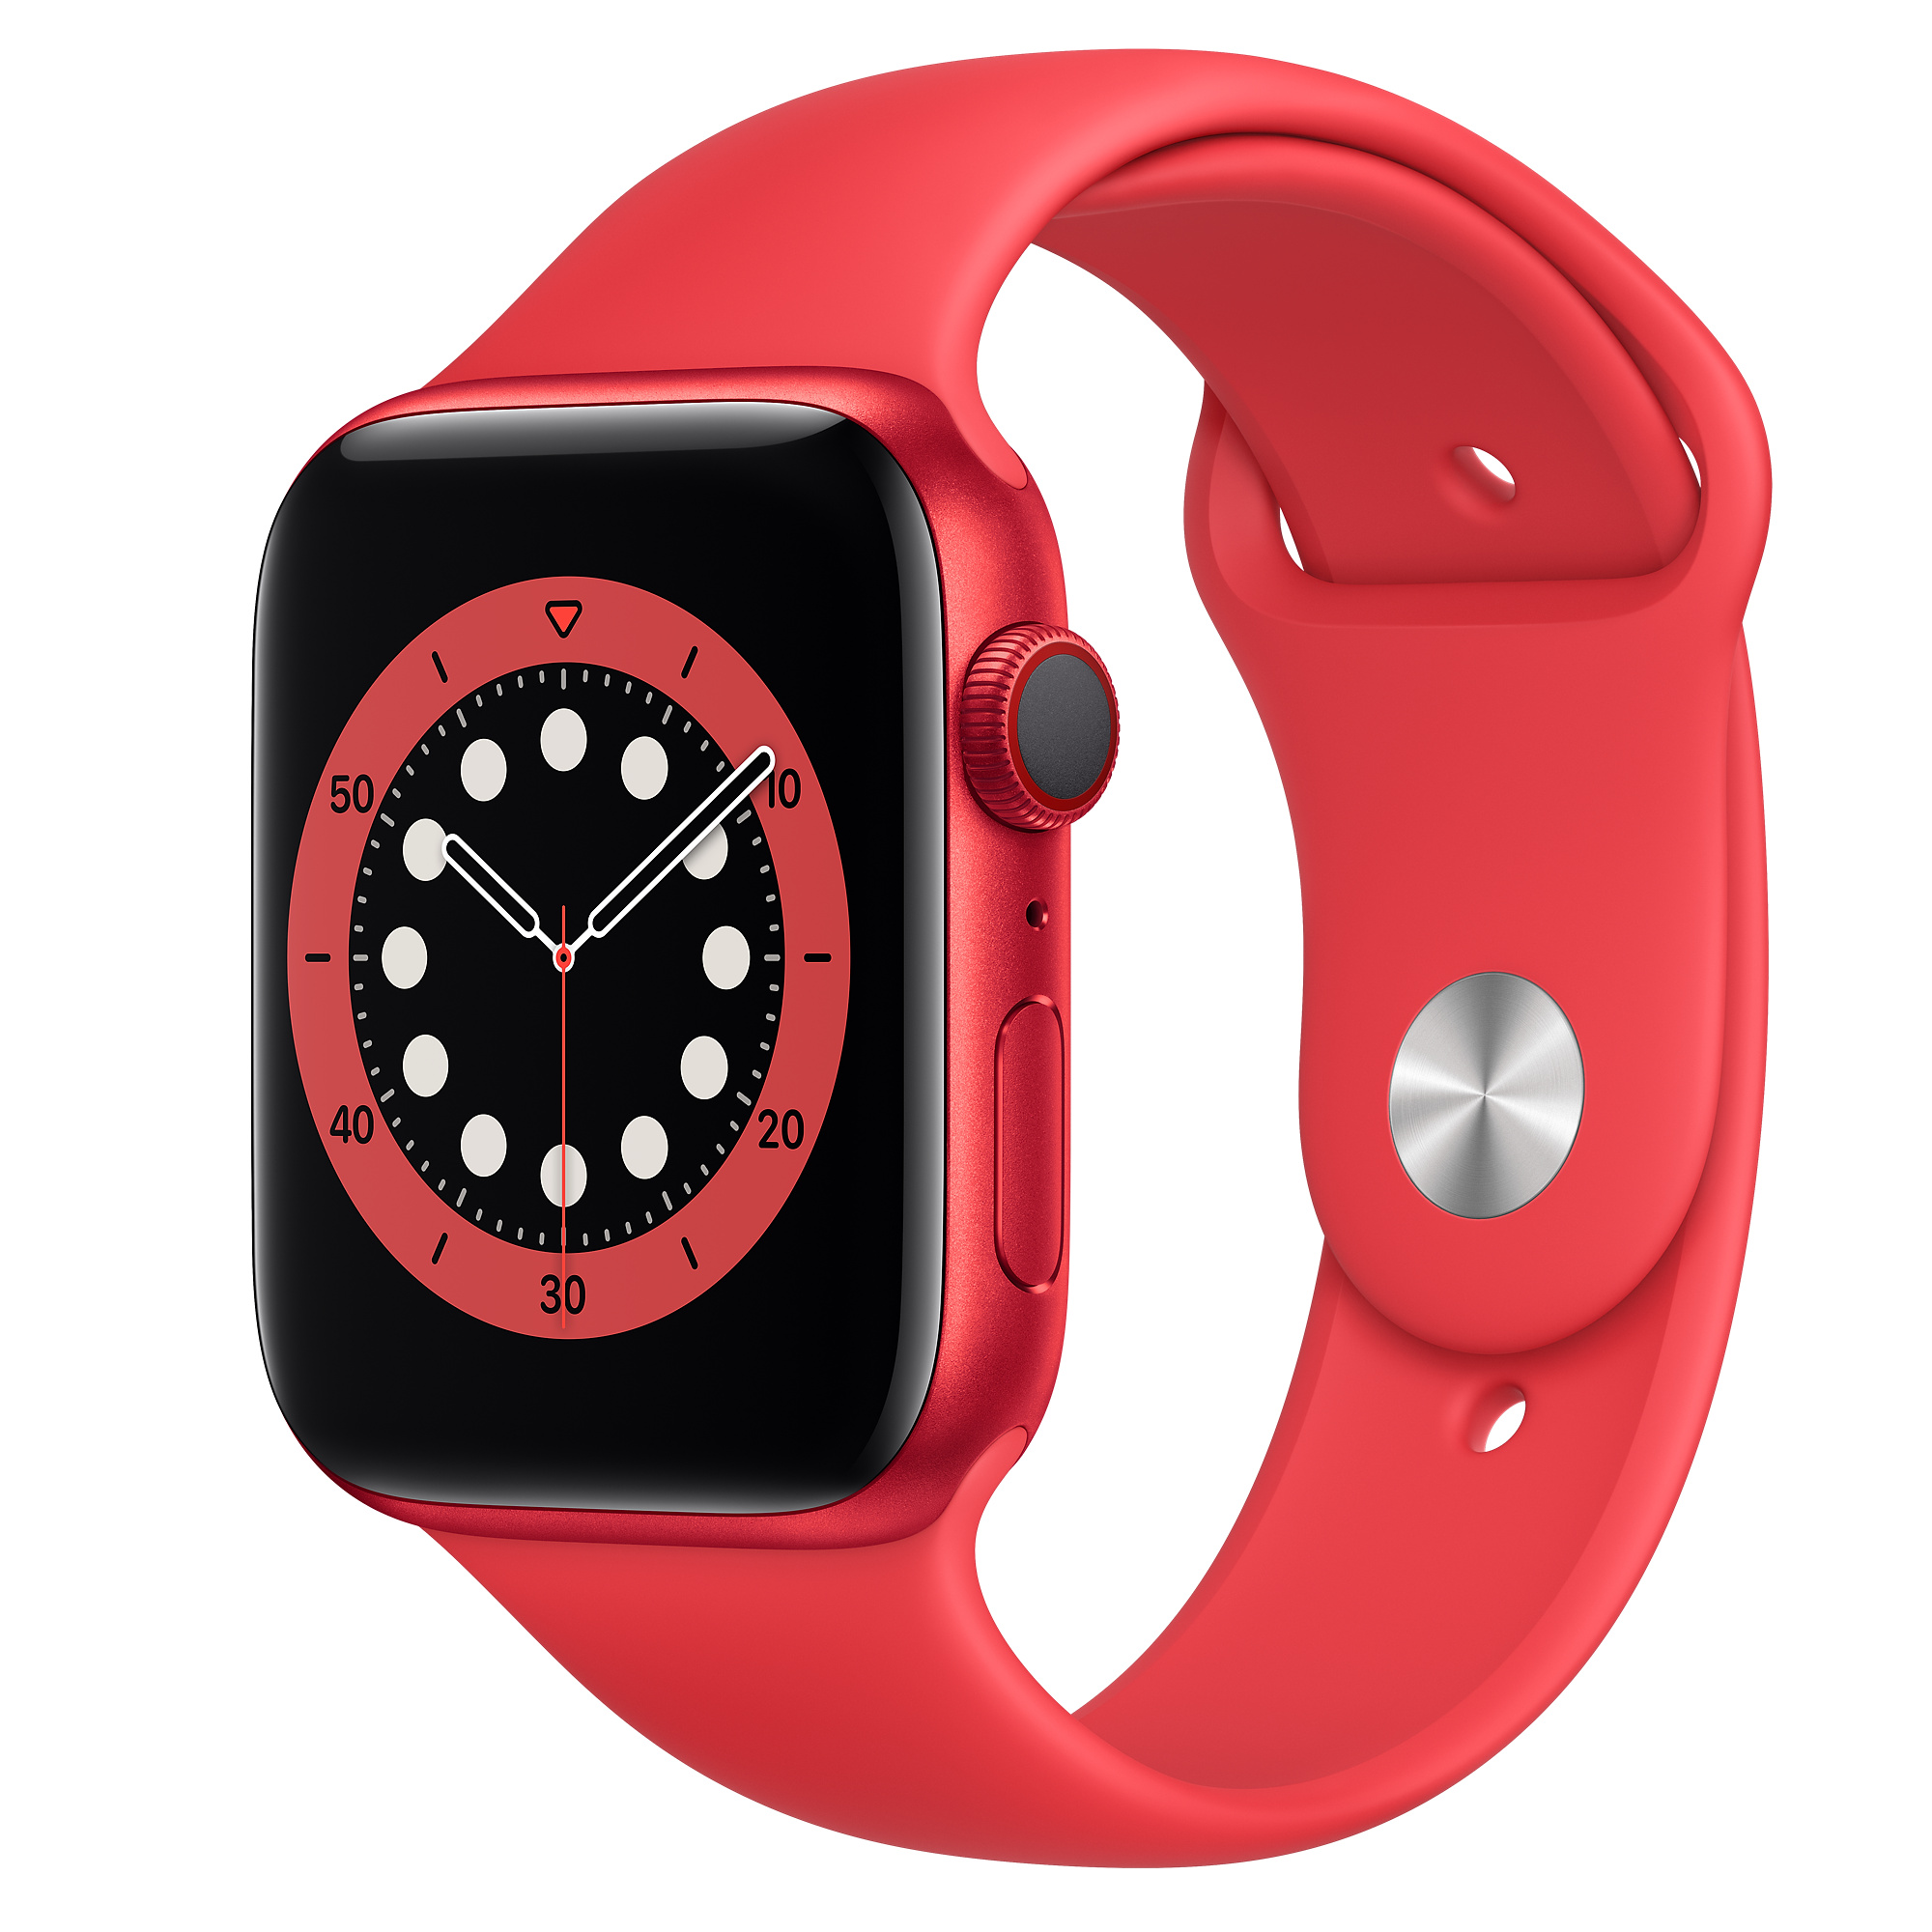 APPLE WATCH SERIES 6 40MM MOOA3LL/A RED